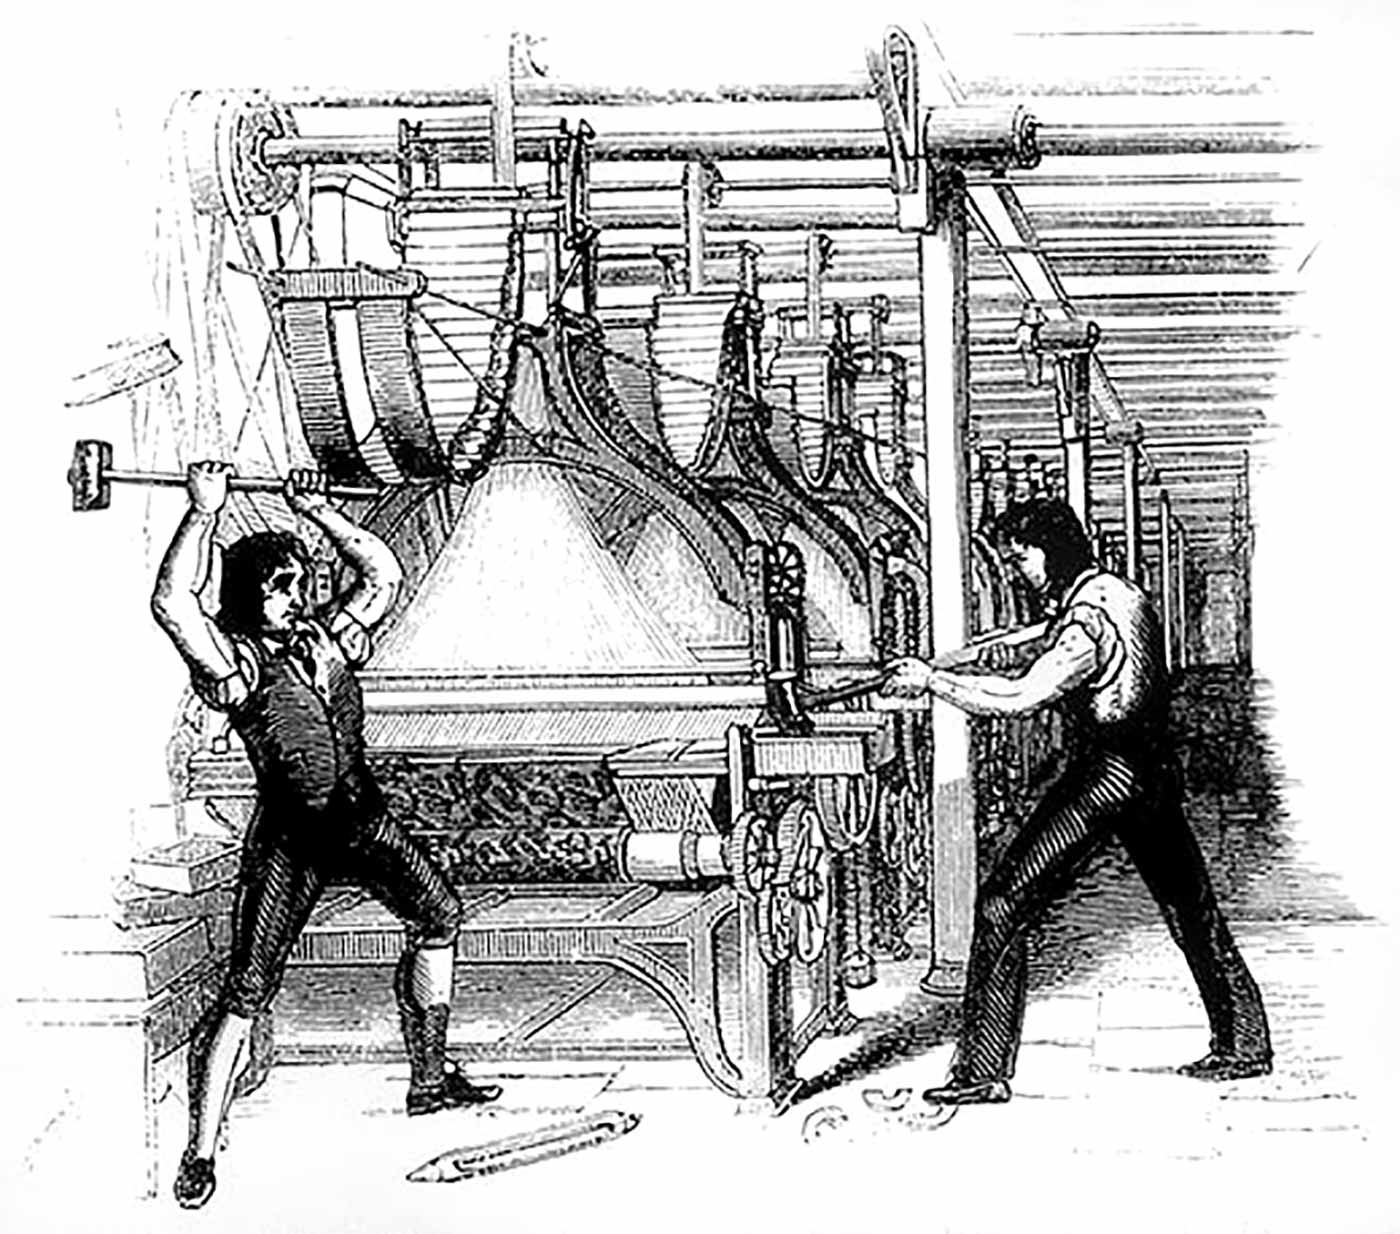 Frame-breakers, or Luddites, smashing a loom.